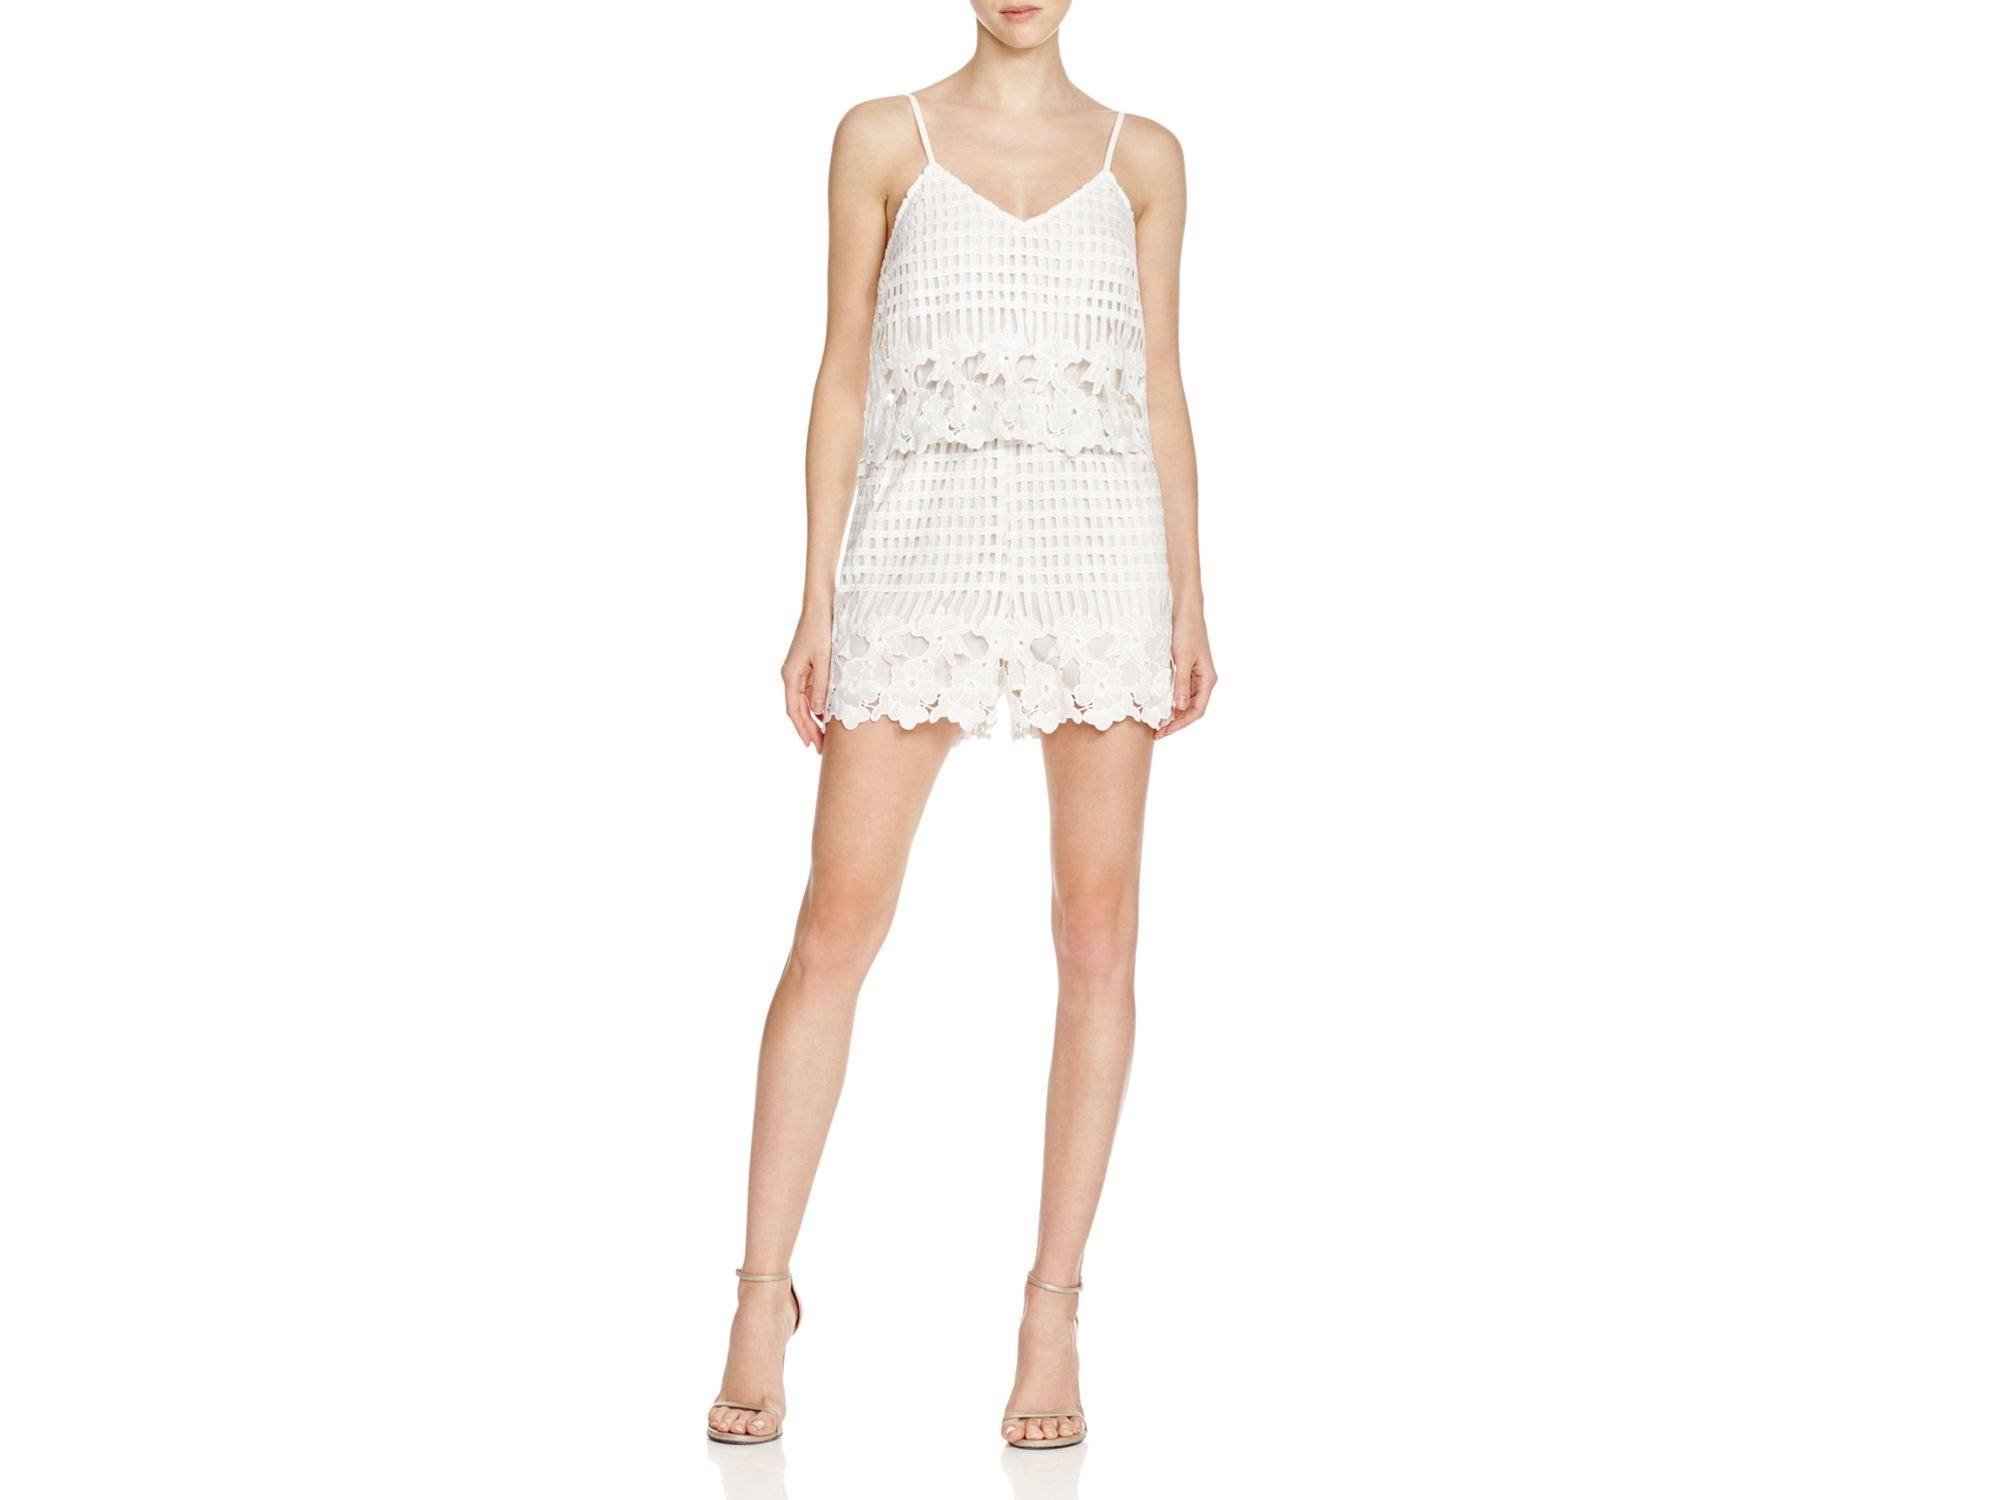 Aqua Women's Border Lace Double Layer Romper in White Size X-Small